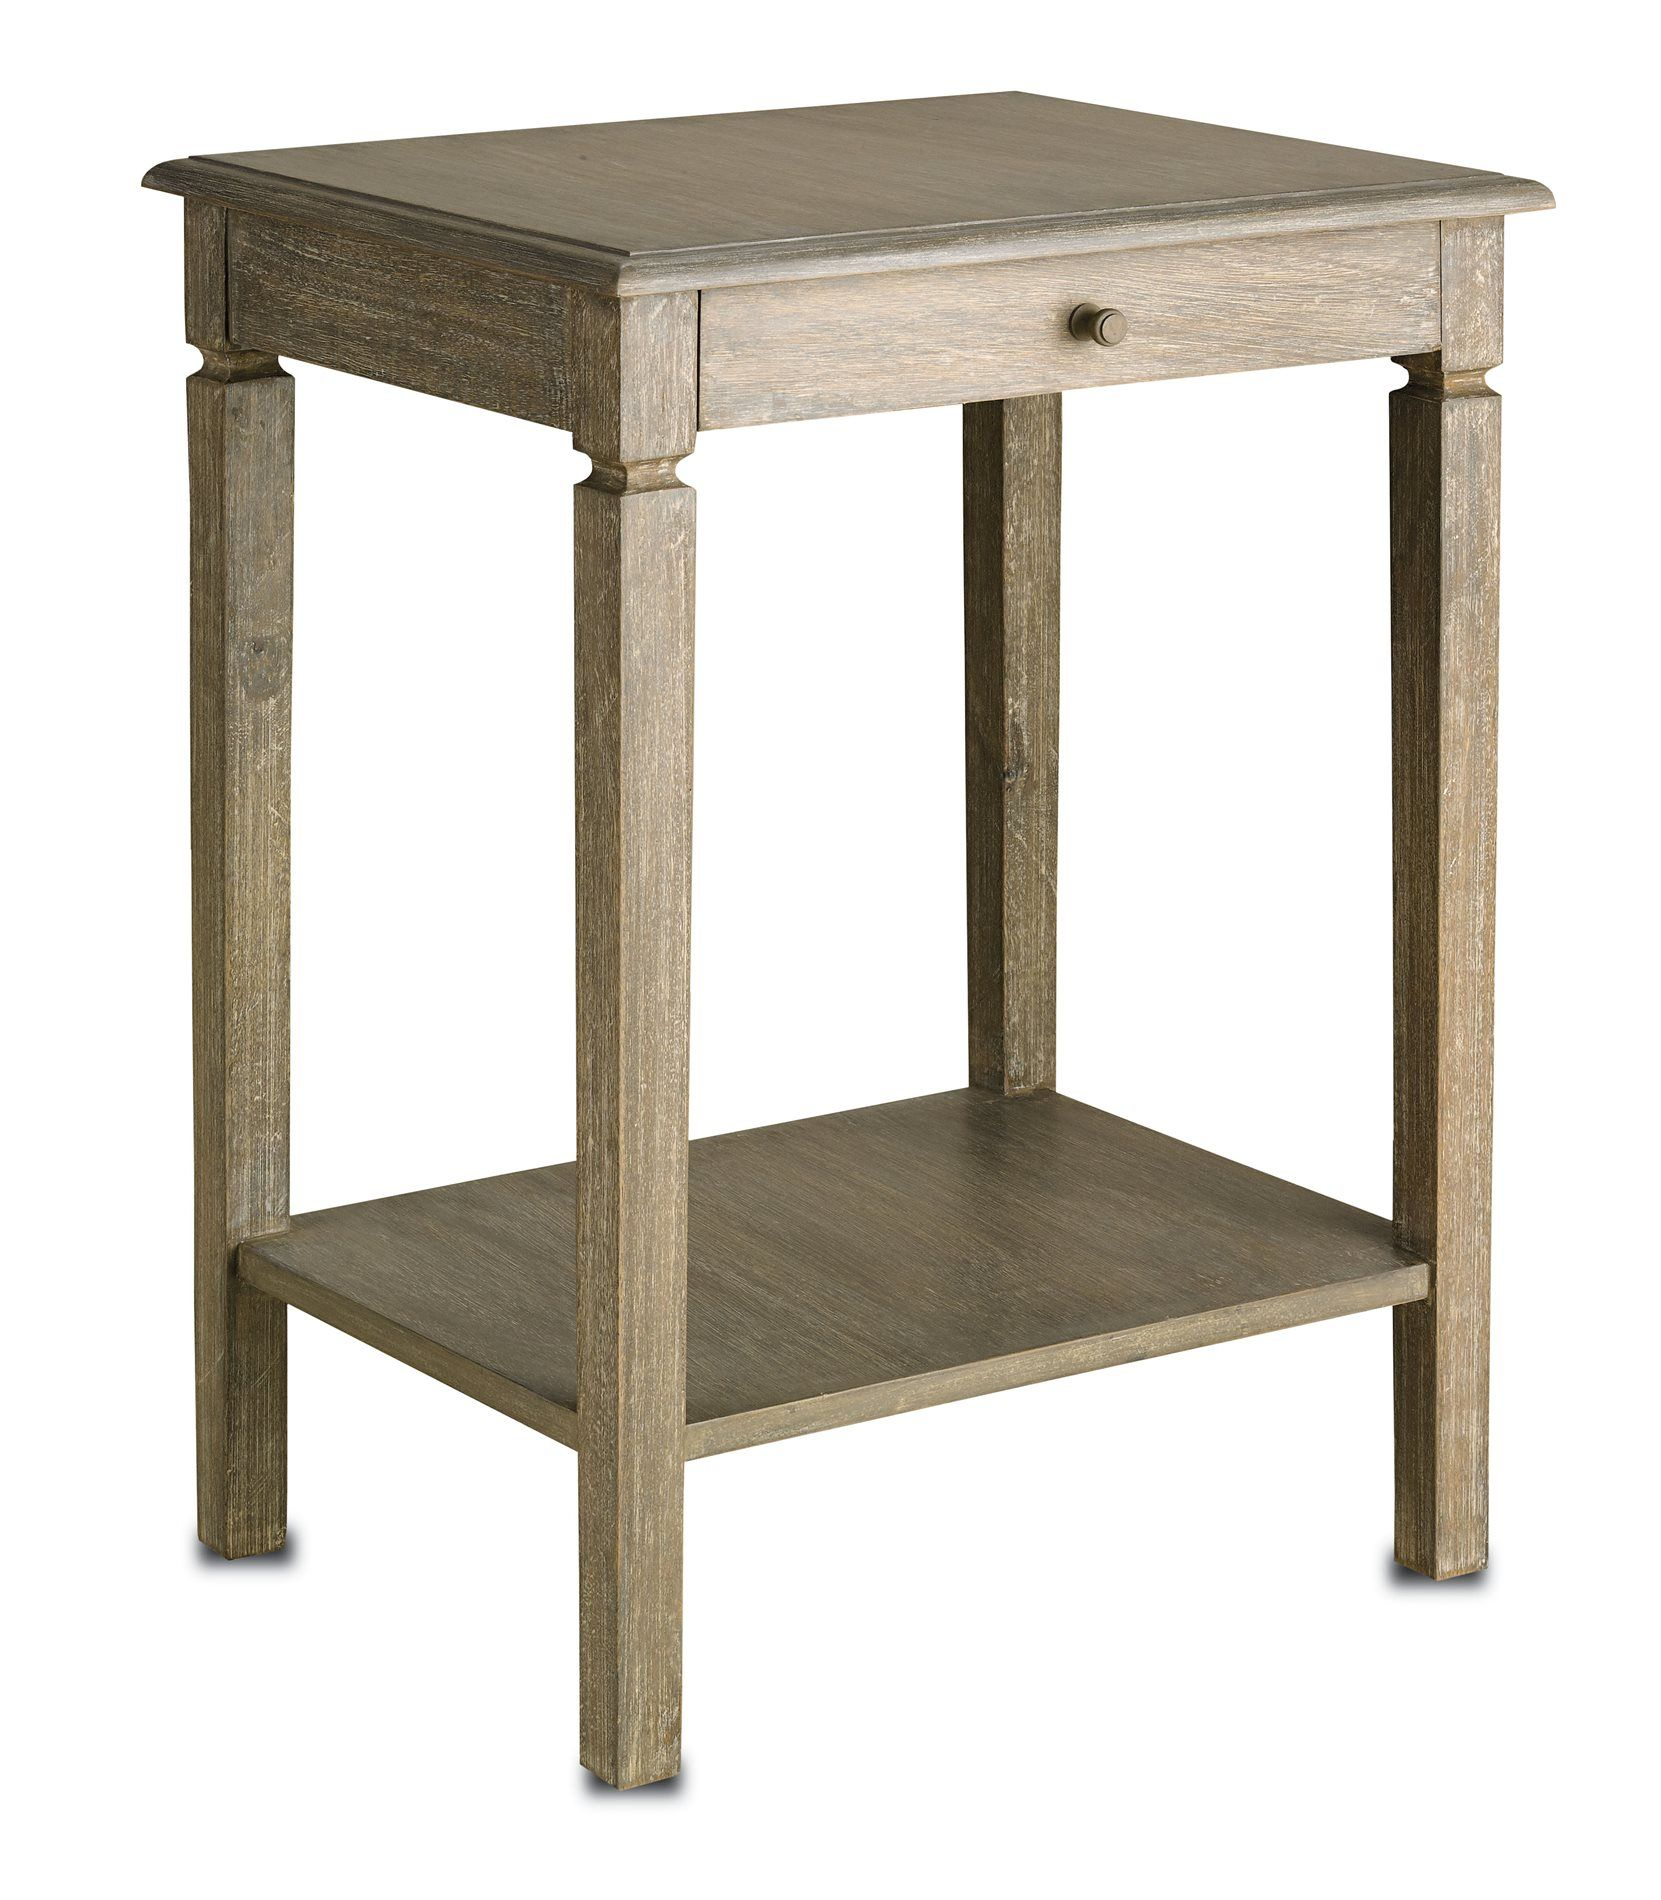 Currey And Company 3141 Walton Traditional Side Table Cnc Height 30 Width 22 Depth 18